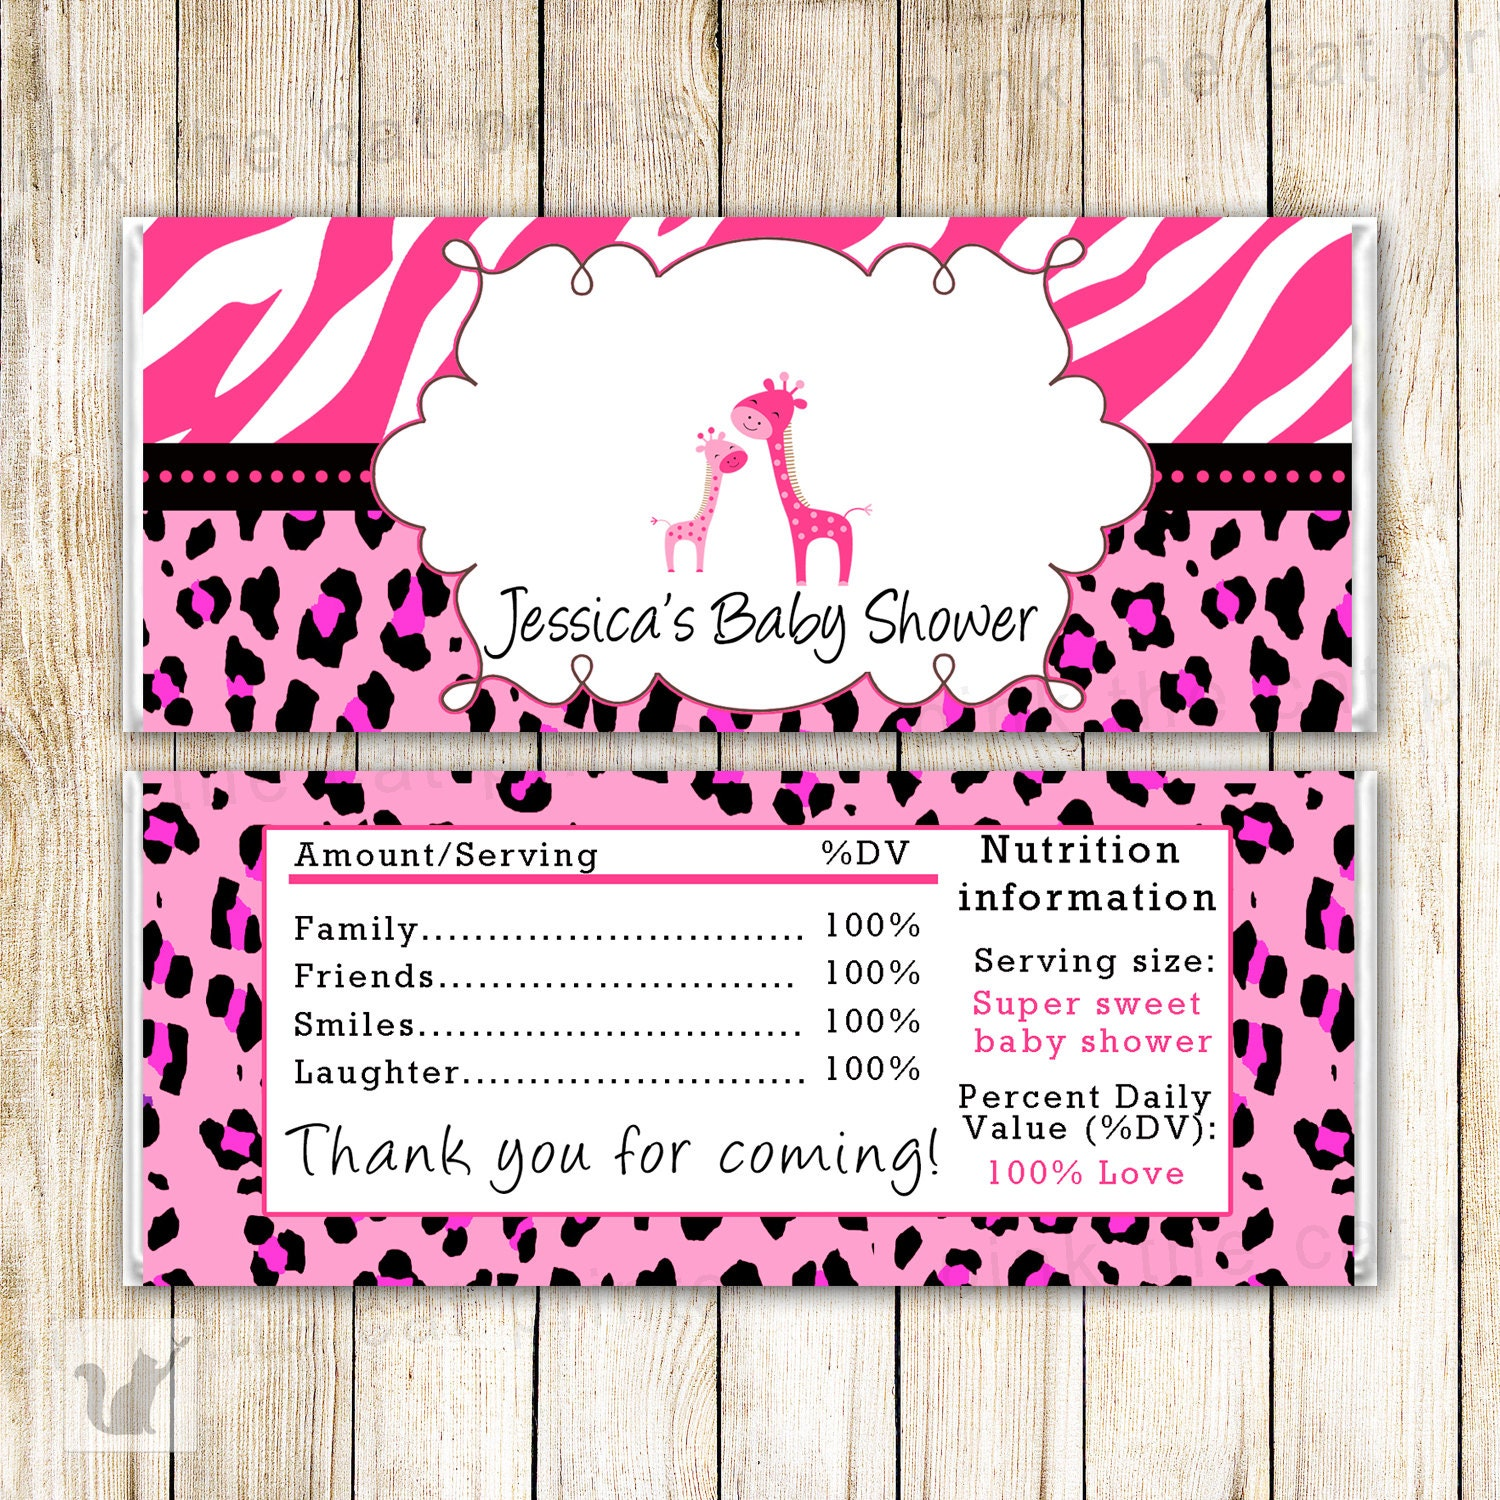 Candy For Baby Shower Ideas: Pink Giraffe Candy Bar Wrapper Giraffe Baby Shower Candy Bar